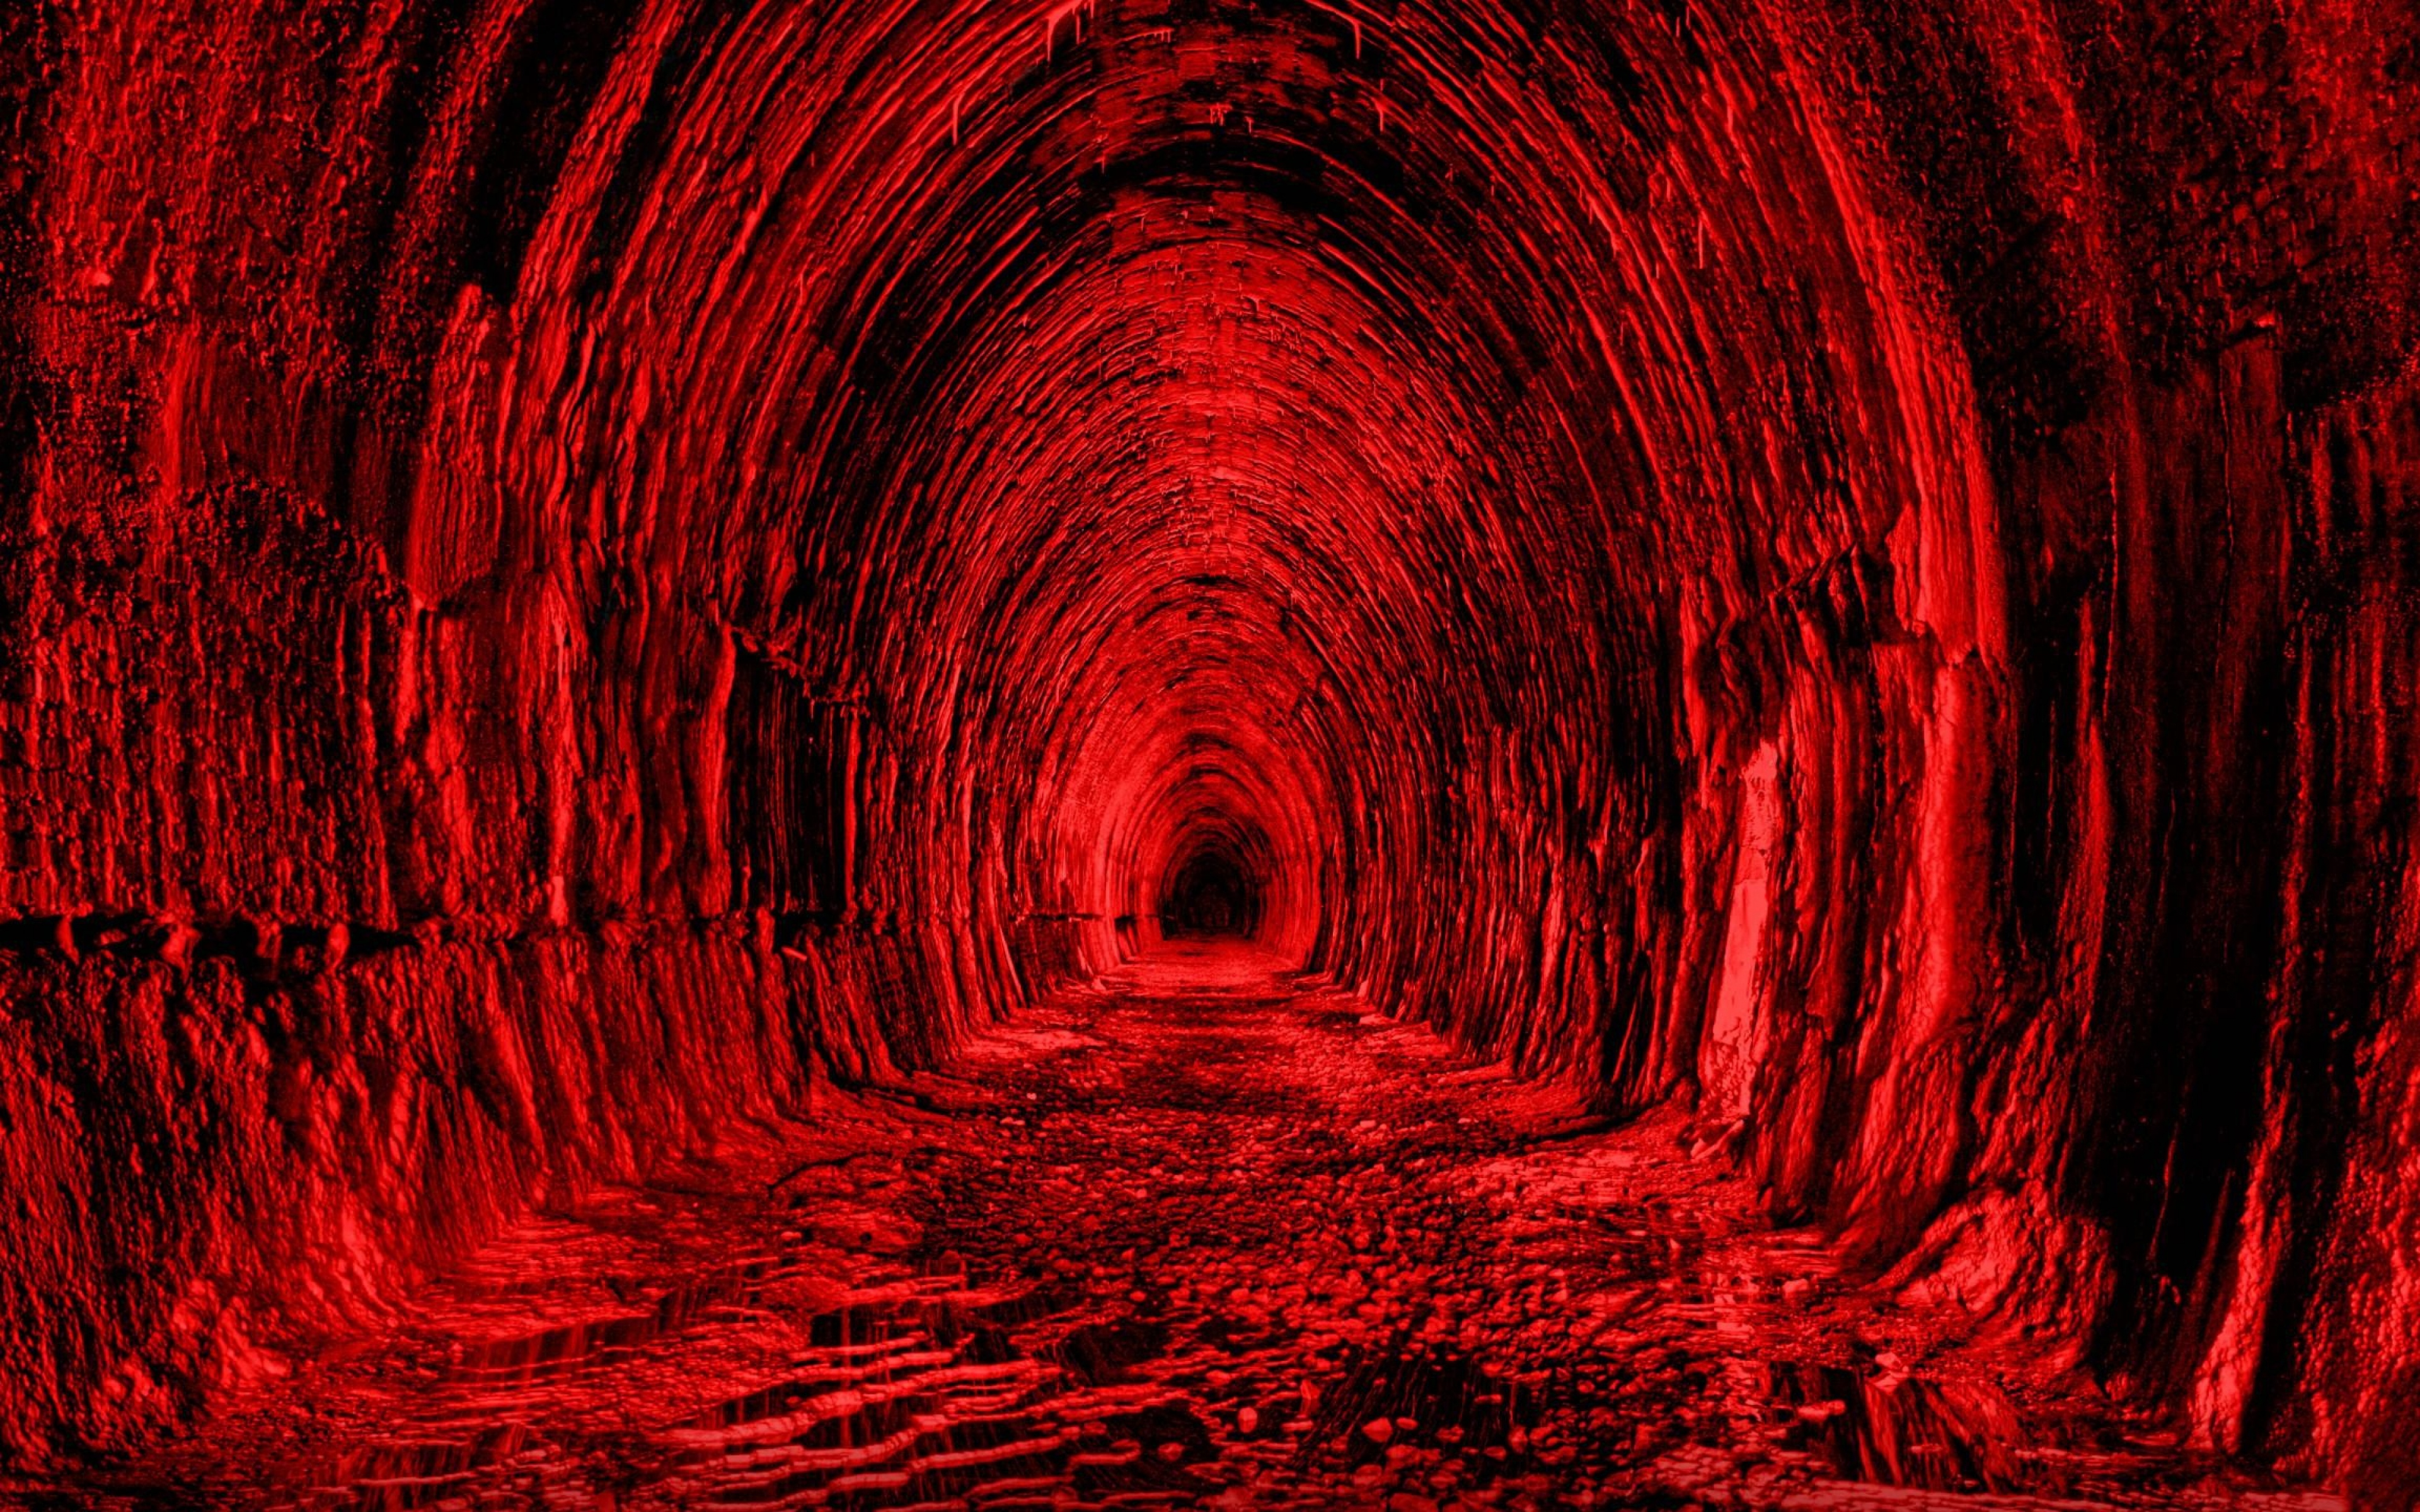 Download Wallpaper 3840x2400 Tunnel Red Black Light Ultra HD 4K HD 3840x2400